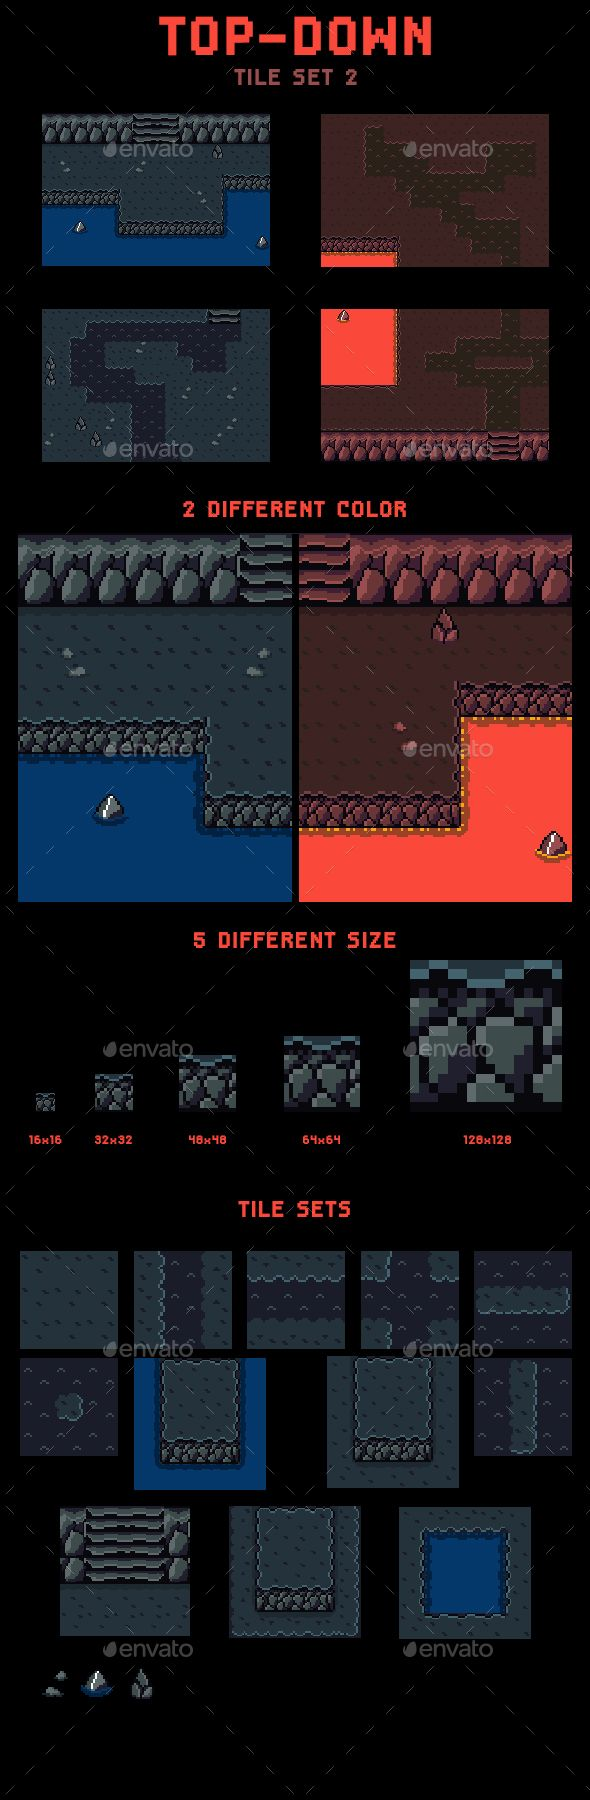 This is a top-down tile set to create some RPG cave and lava